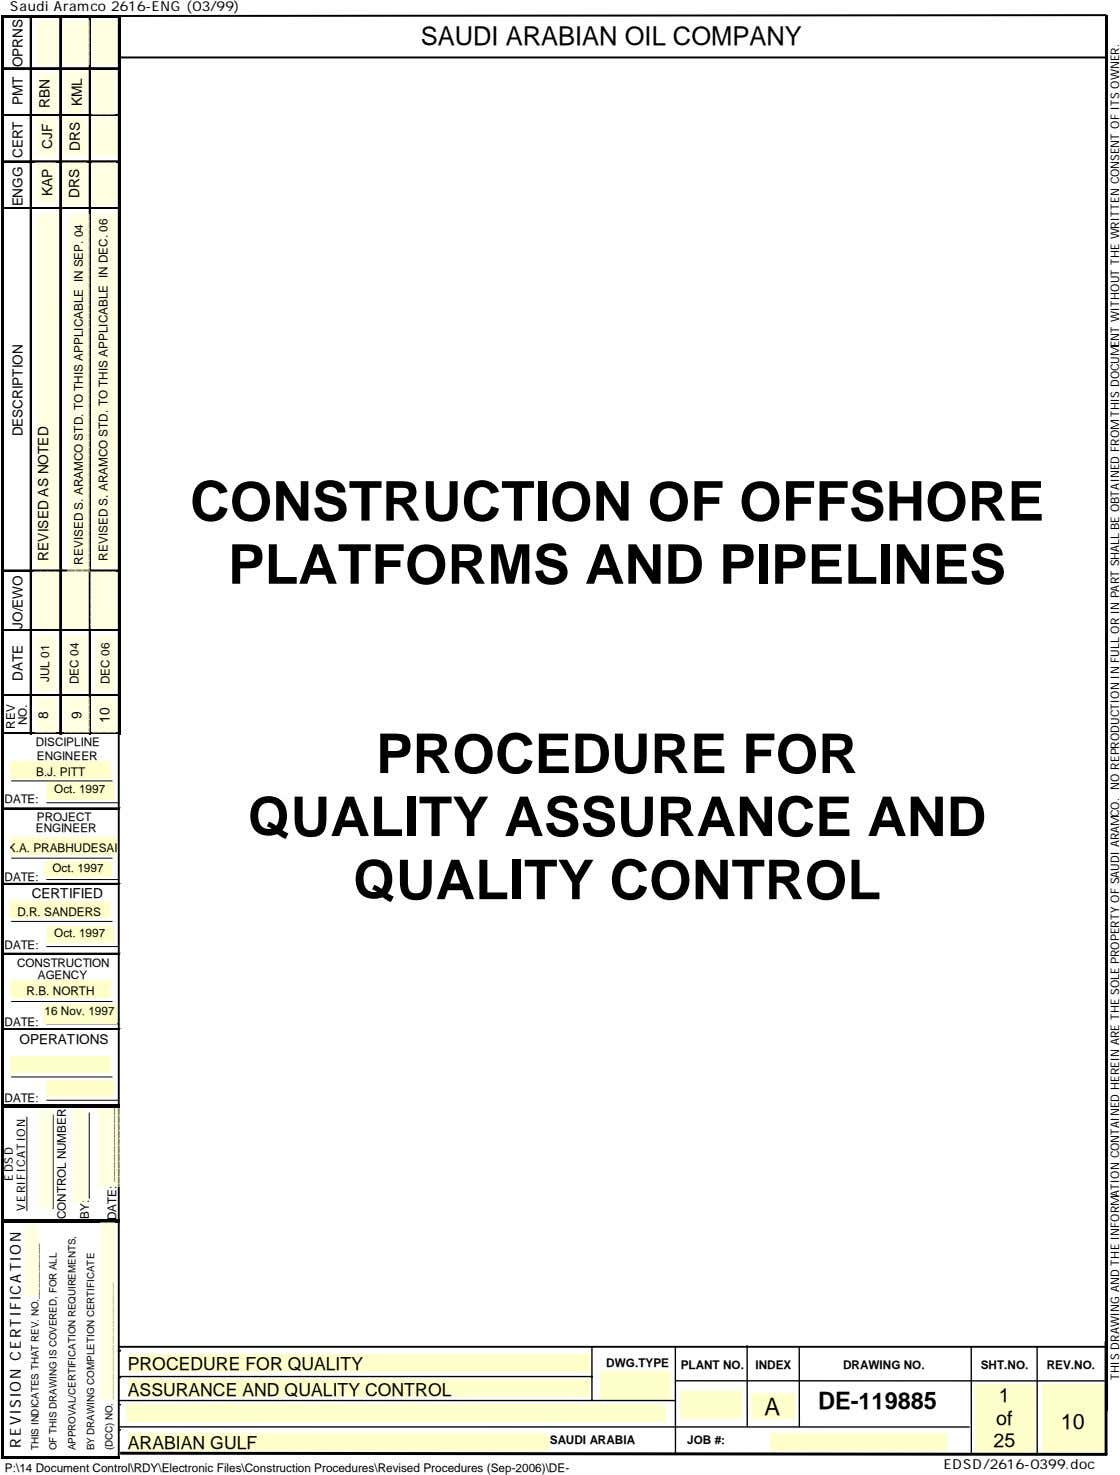 Saudi Aramco 2616-ENG (03/99) SAUDI ARABIAN OIL COMPANY CONSTRUCTION OF OFFSHORE PLATFORMS AND PIPELINES DISCIPLINE